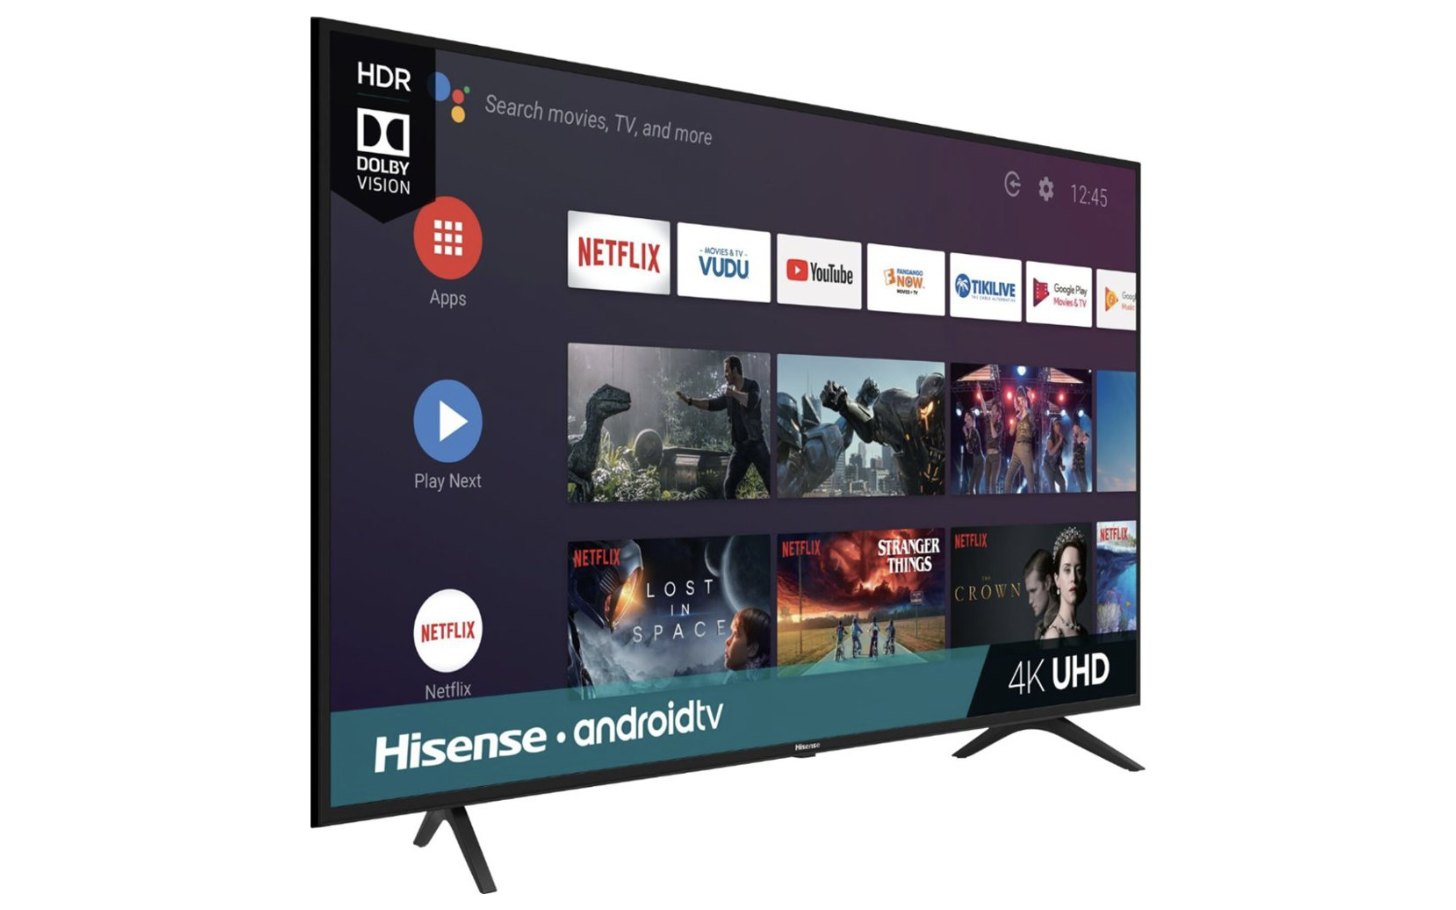 This 65 Hisense H6500f Android Tv Is 350 150 Off At Best Buy Today Only